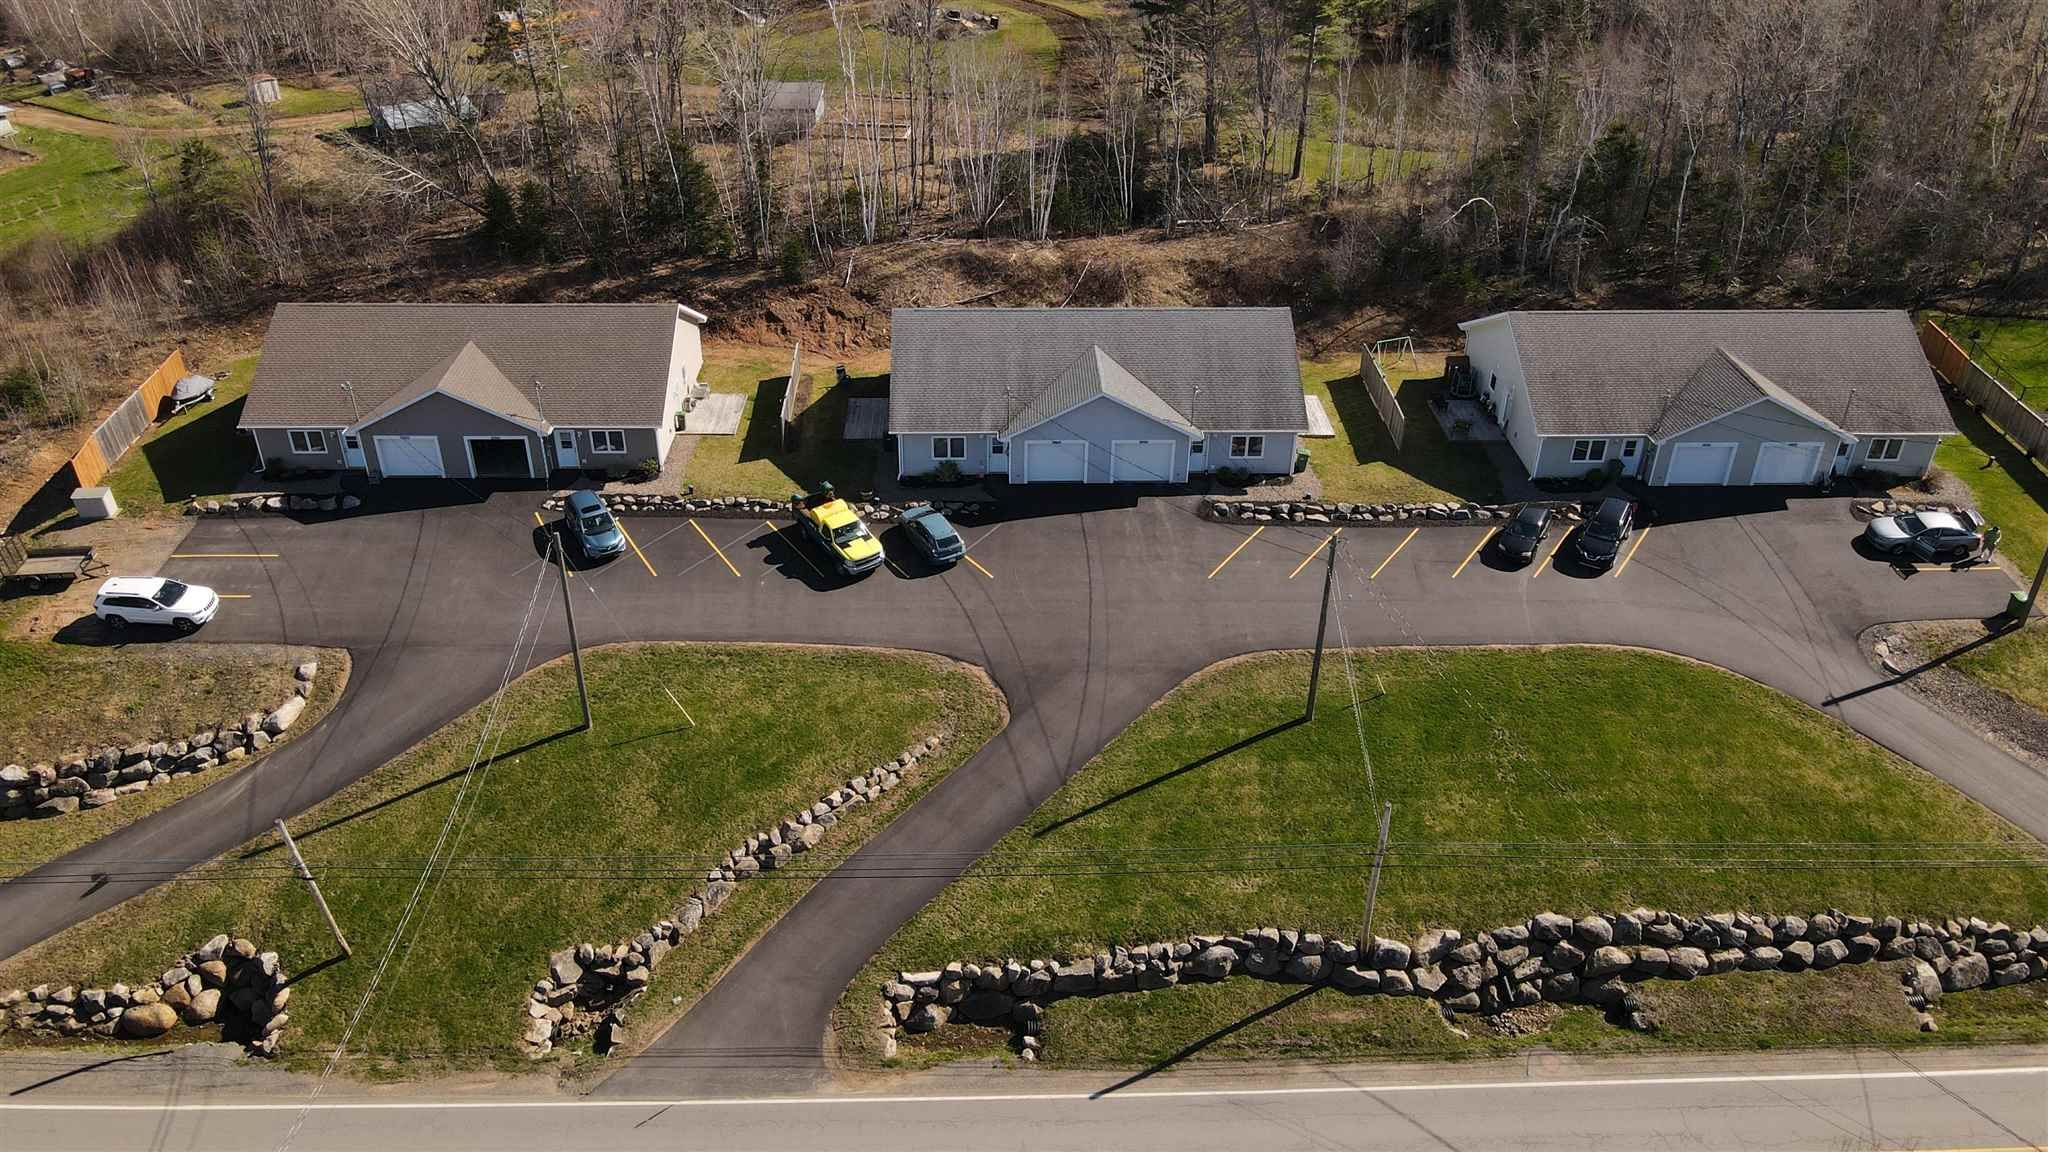 Main Photo: 13582-13600 Highway 1 in Lockhartville: 404-Kings County Multi-Family for sale (Annapolis Valley)  : MLS®# 202106188